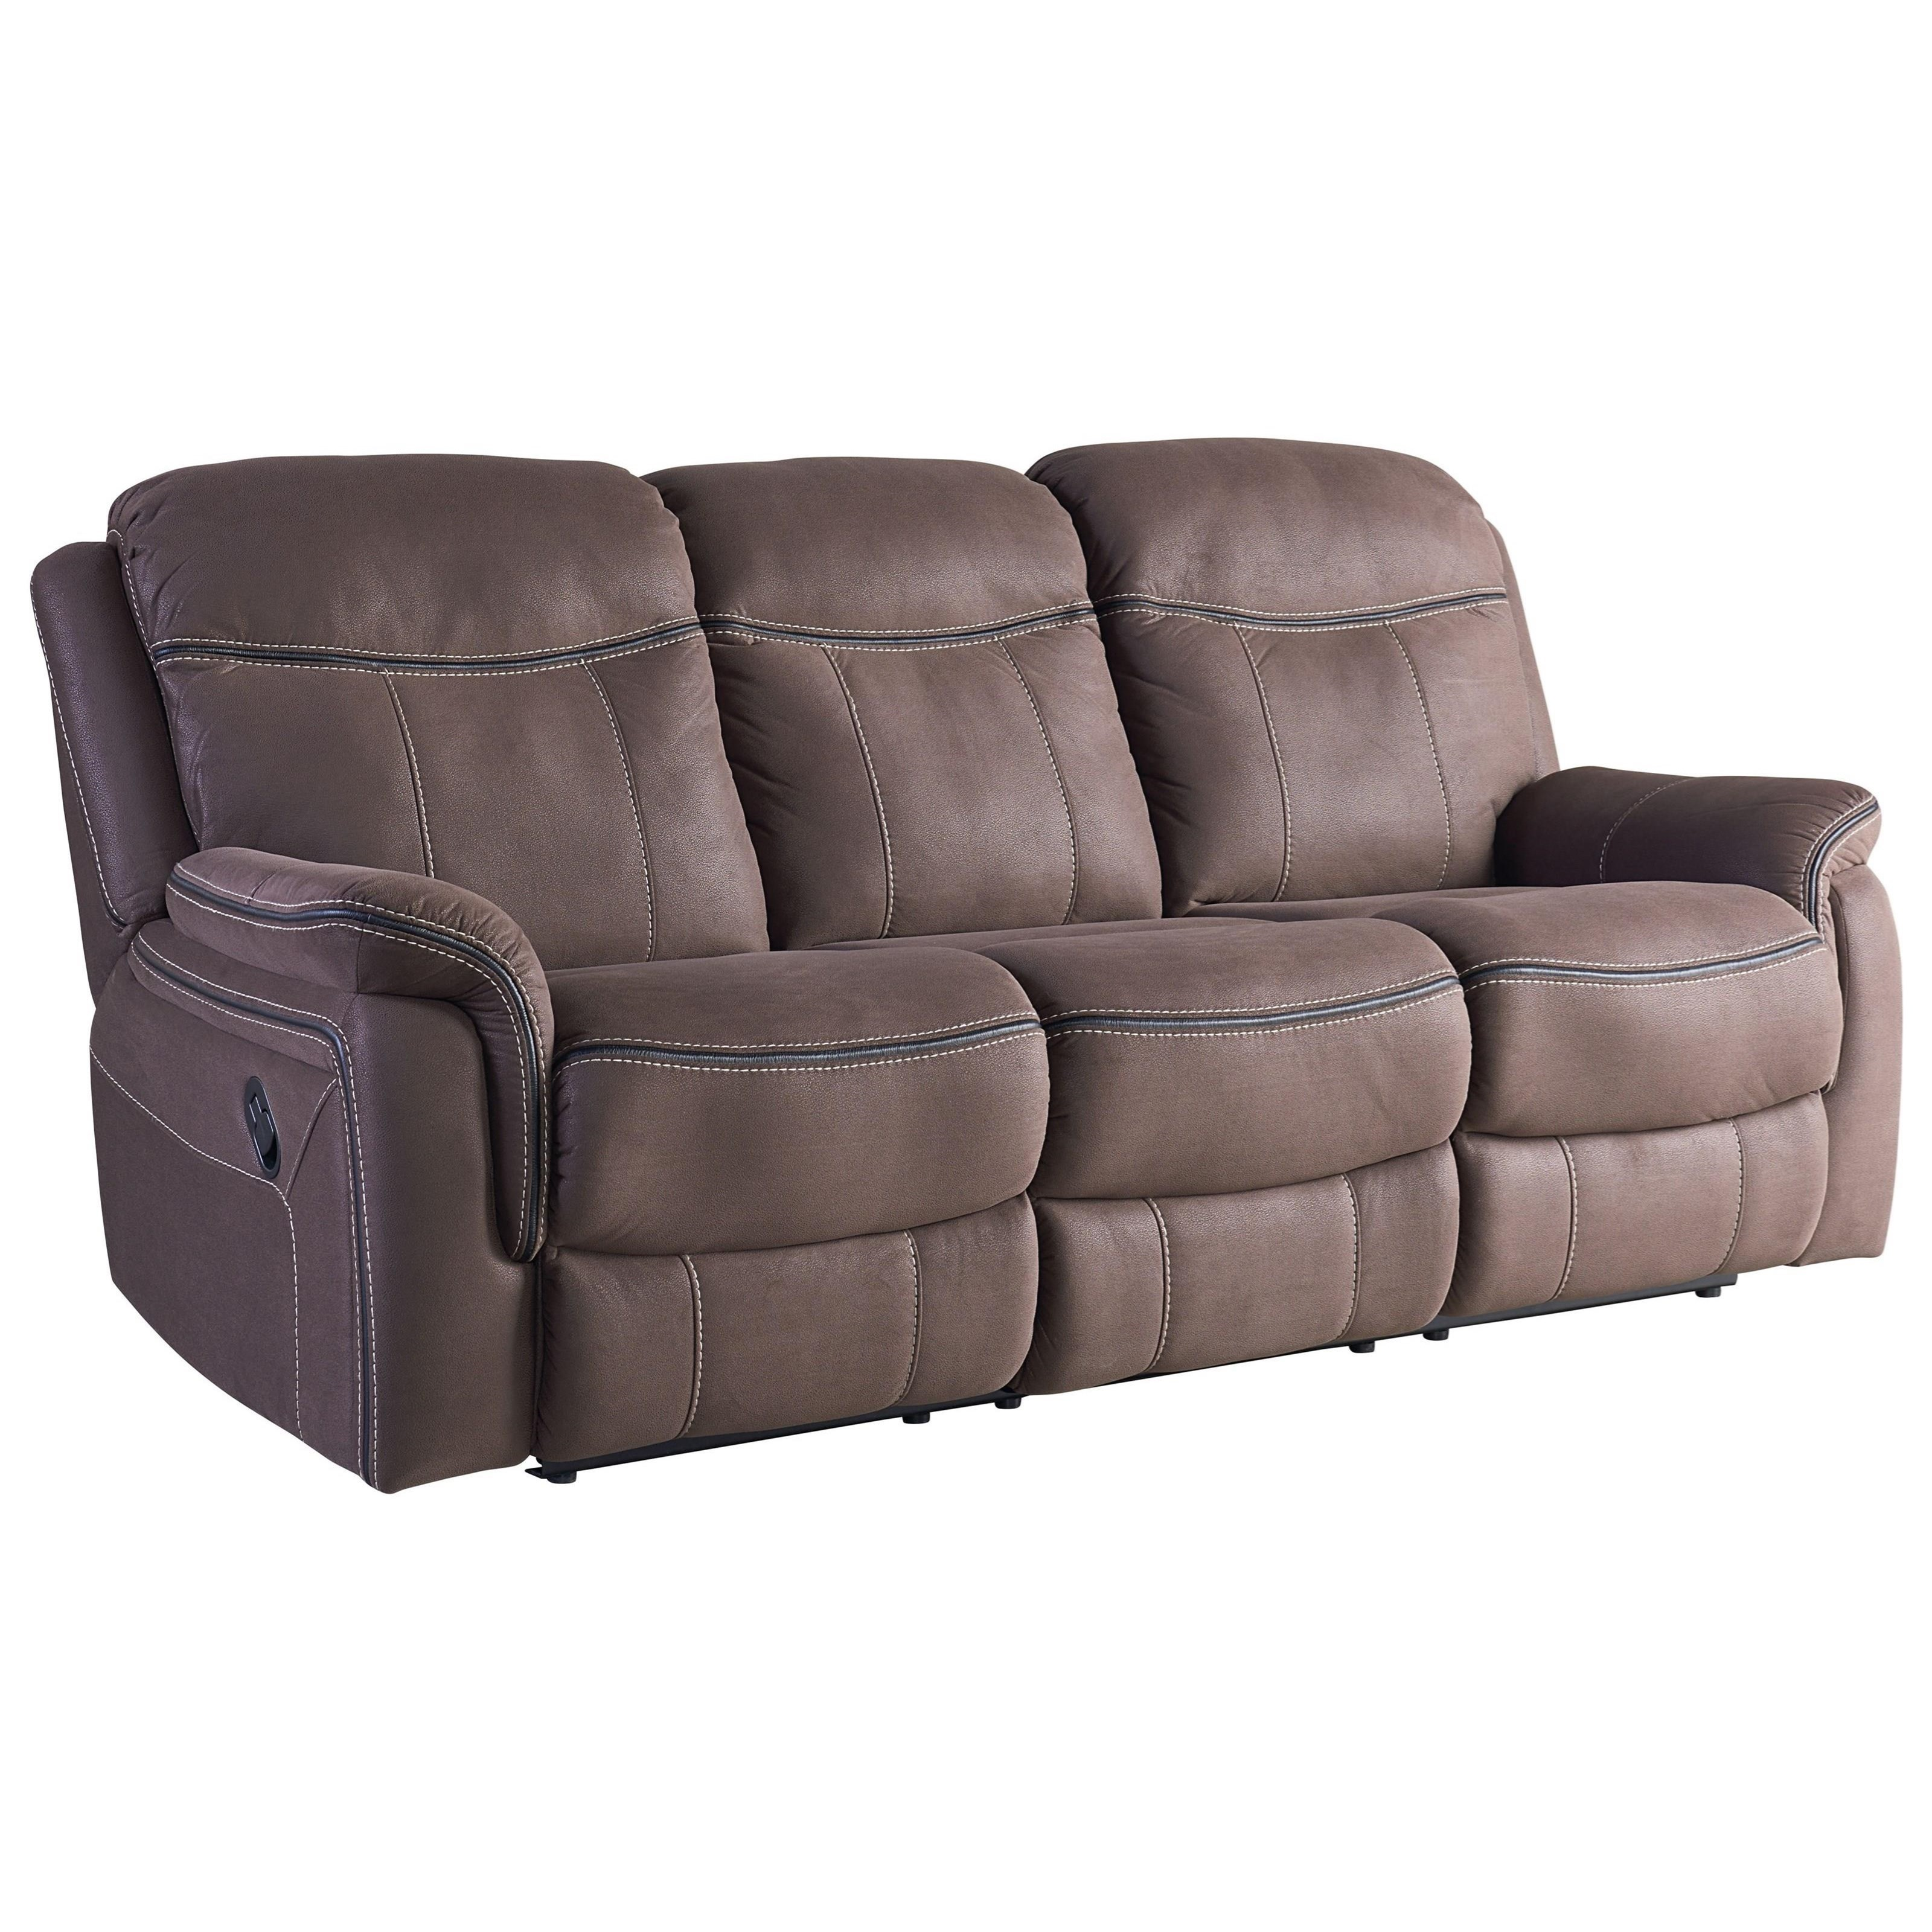 Standard Furniture Champion Reclining Sofa - Item Number: 4030393